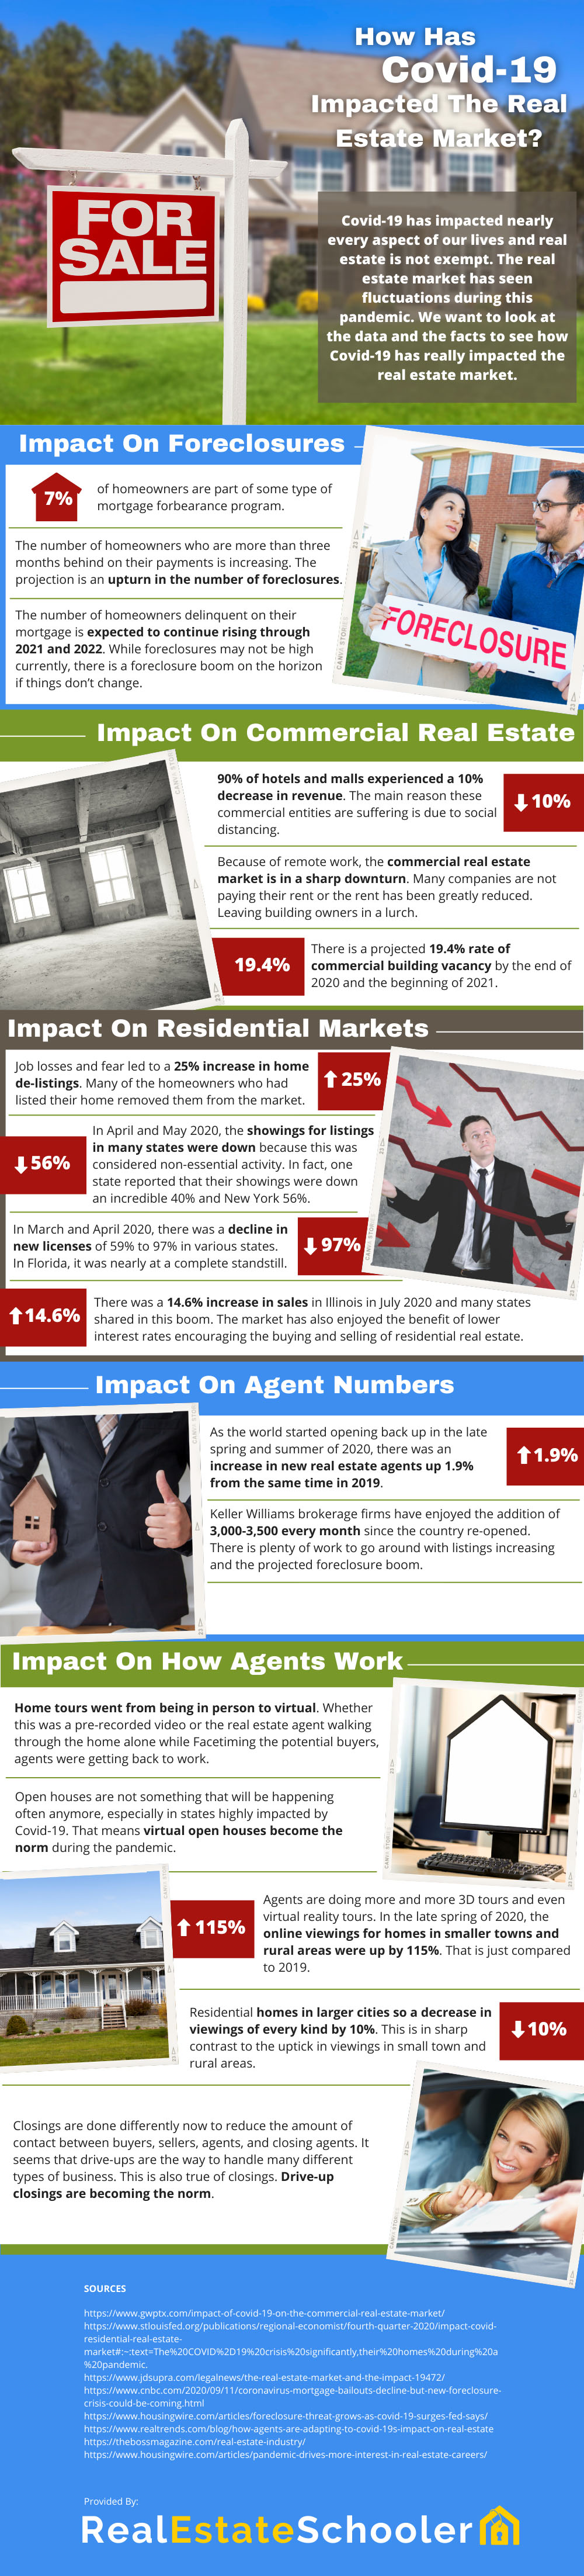 The Impact Covid-19 Has Had On The Real Estate Market